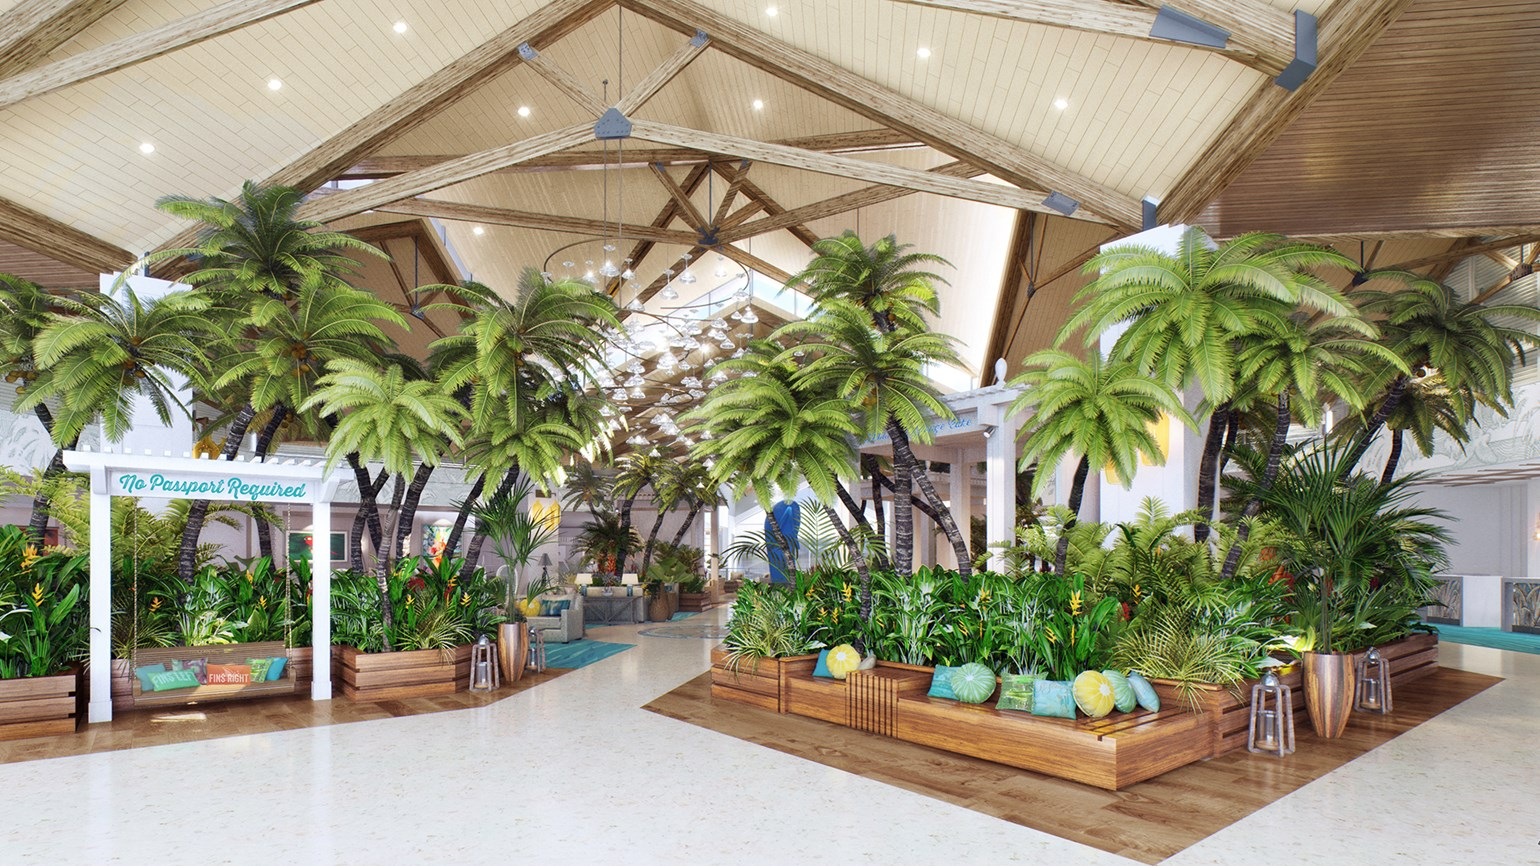 Margaritaville Resort Orlando starts taking reservations